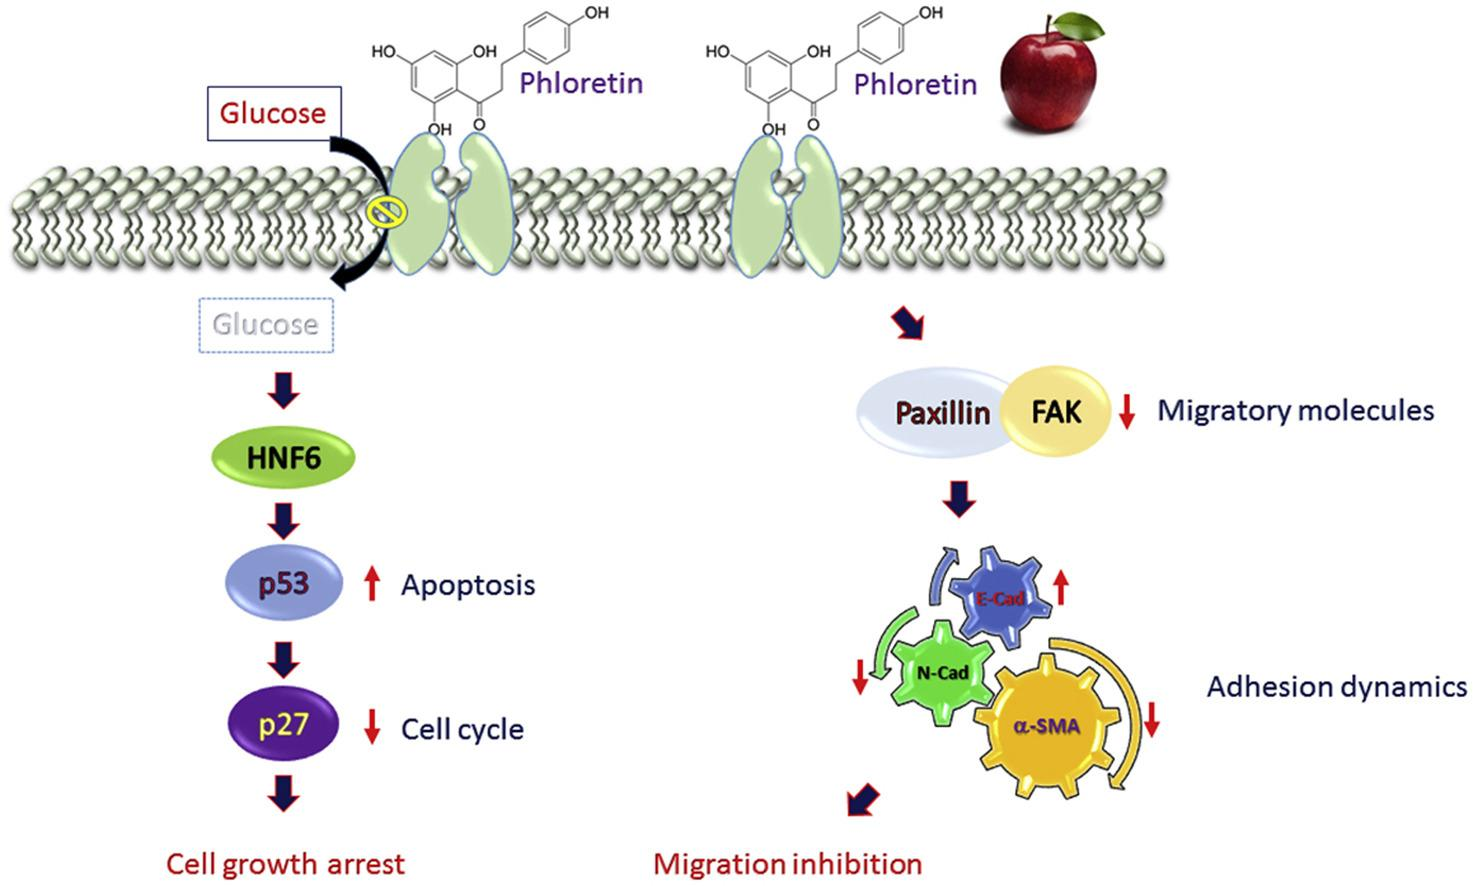 The apple polyphenol phloretin inhibits breast cancer cell migration and proliferation via inhibition of signals by type 2 glucose transporter